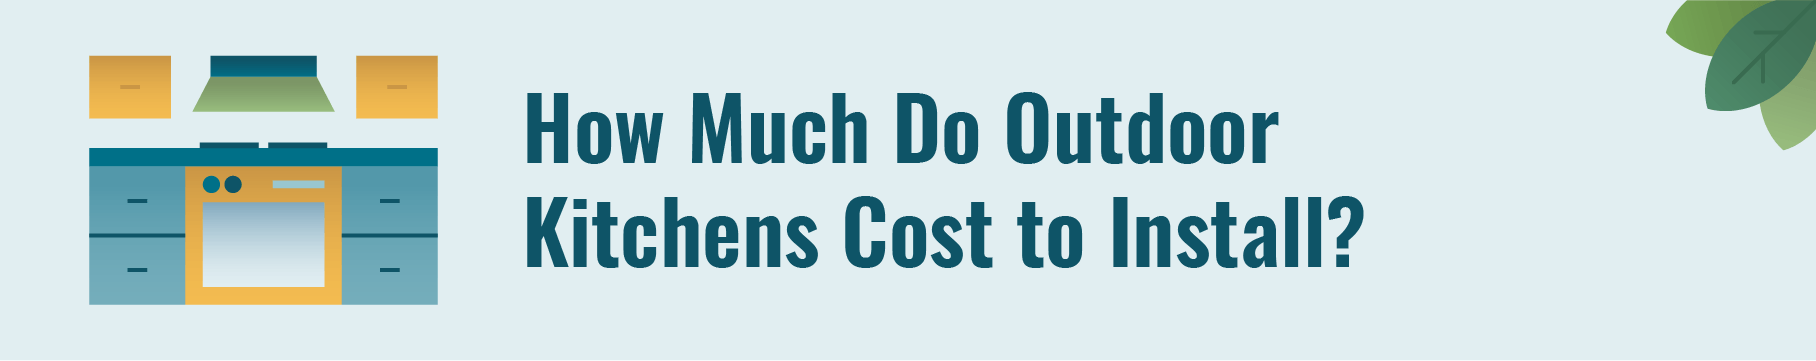 How much do outdoor kitchens cost to install?